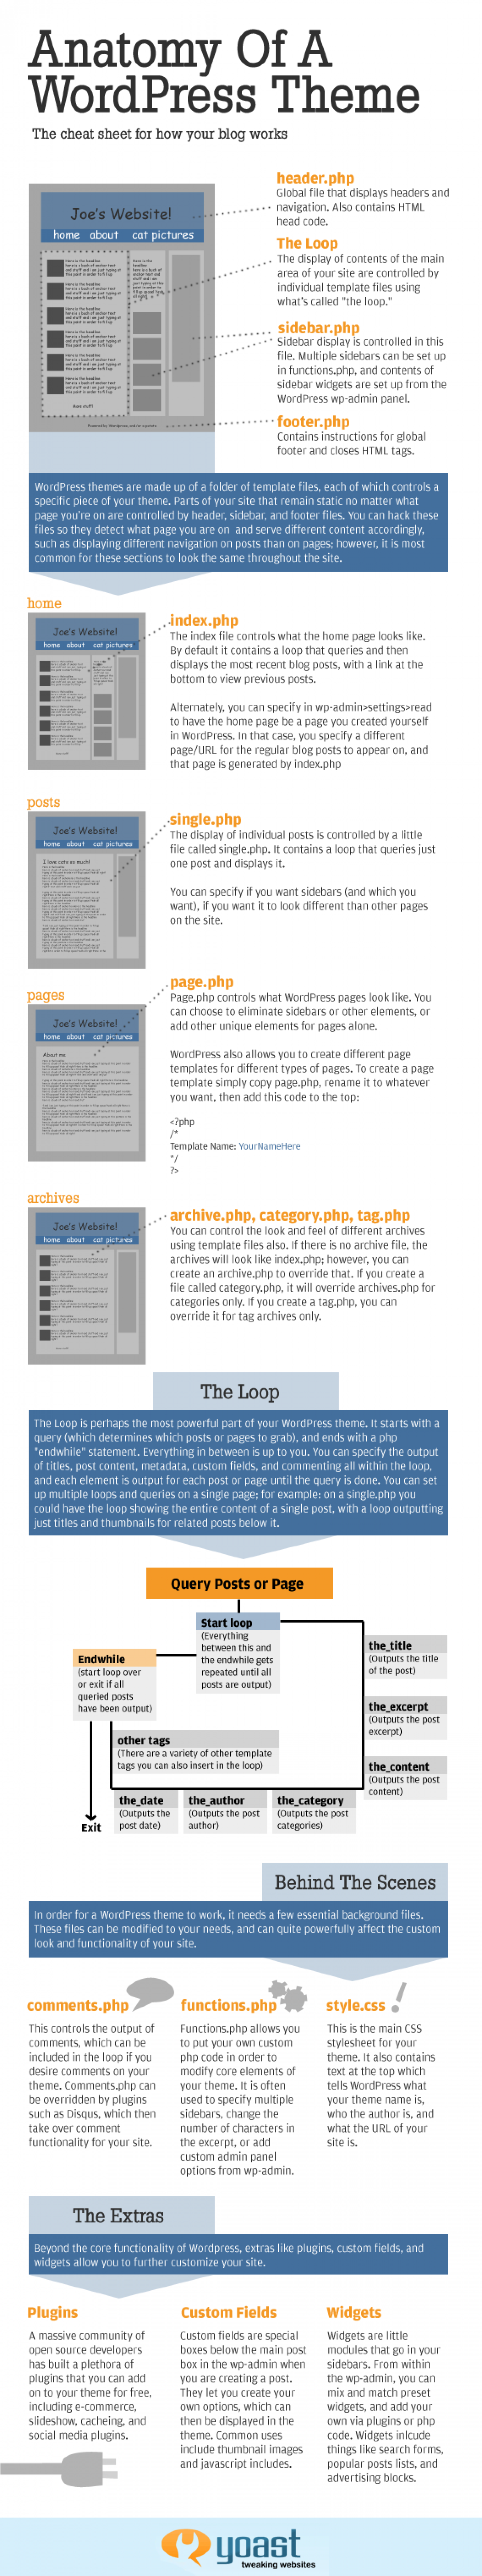 The Anatomy of a Word Press Theme Infographic